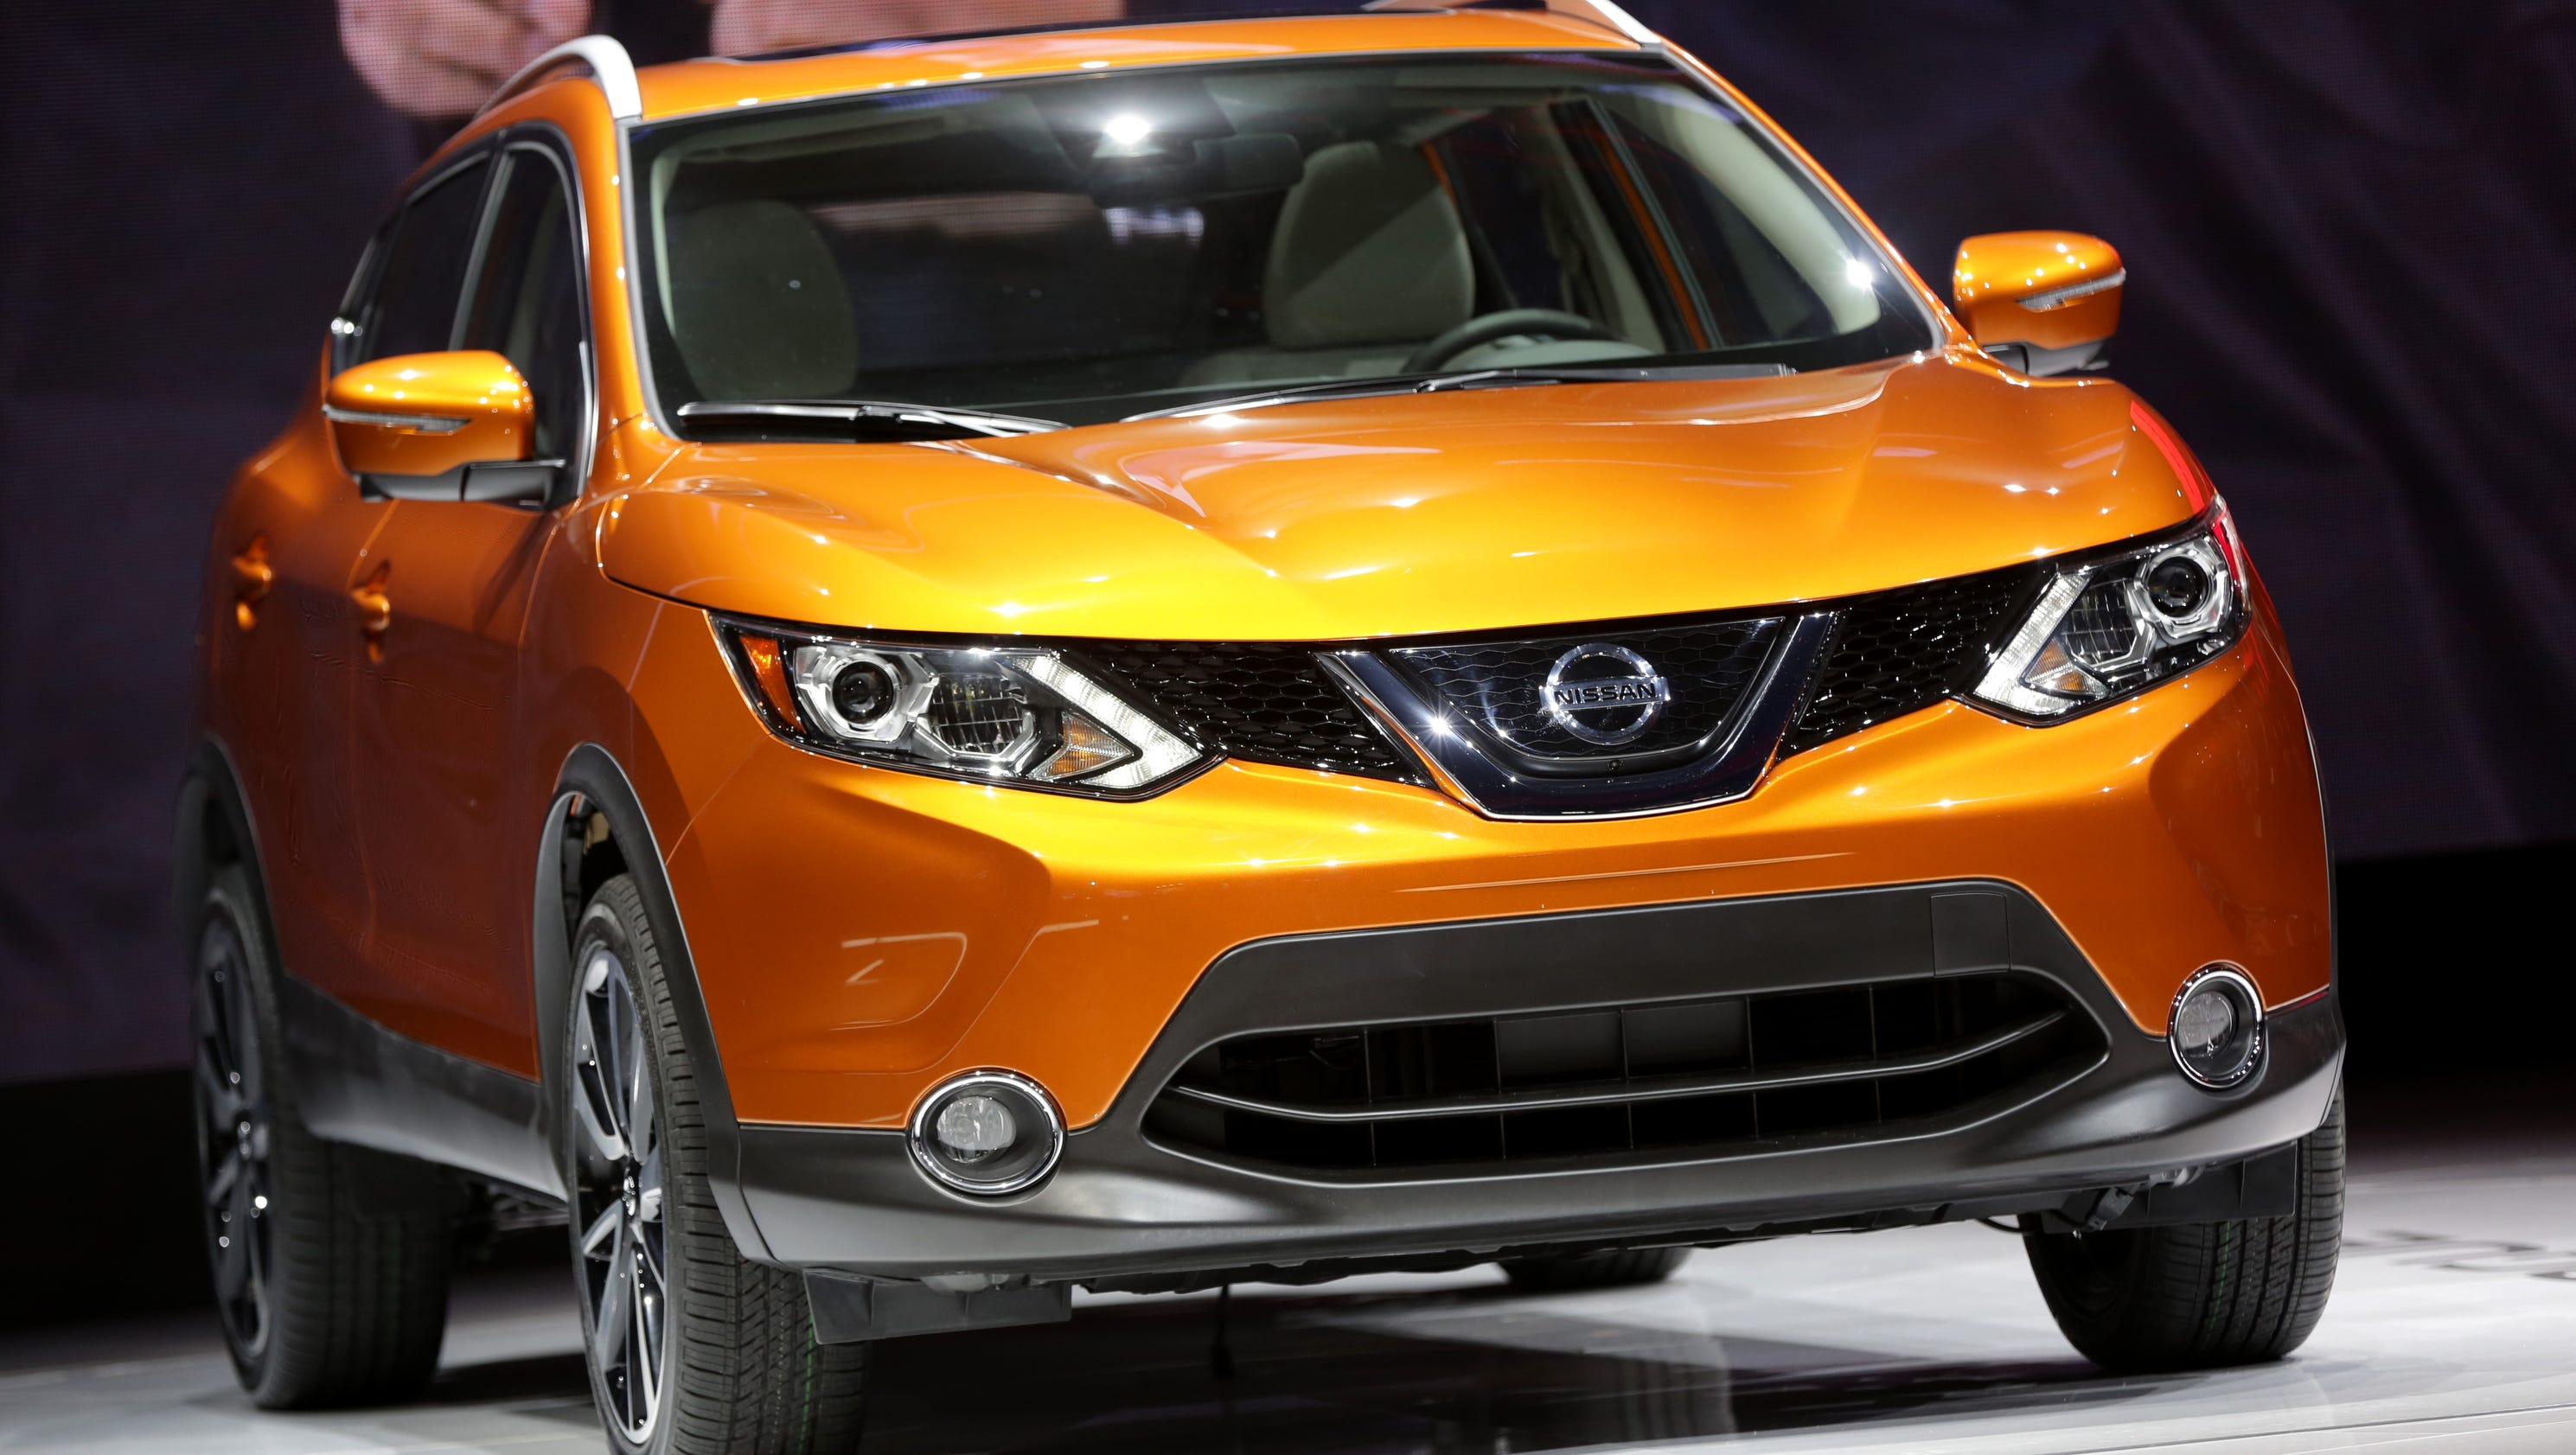 nissan reveals rogue sport vmotion concept car at detroit auto show. Black Bedroom Furniture Sets. Home Design Ideas